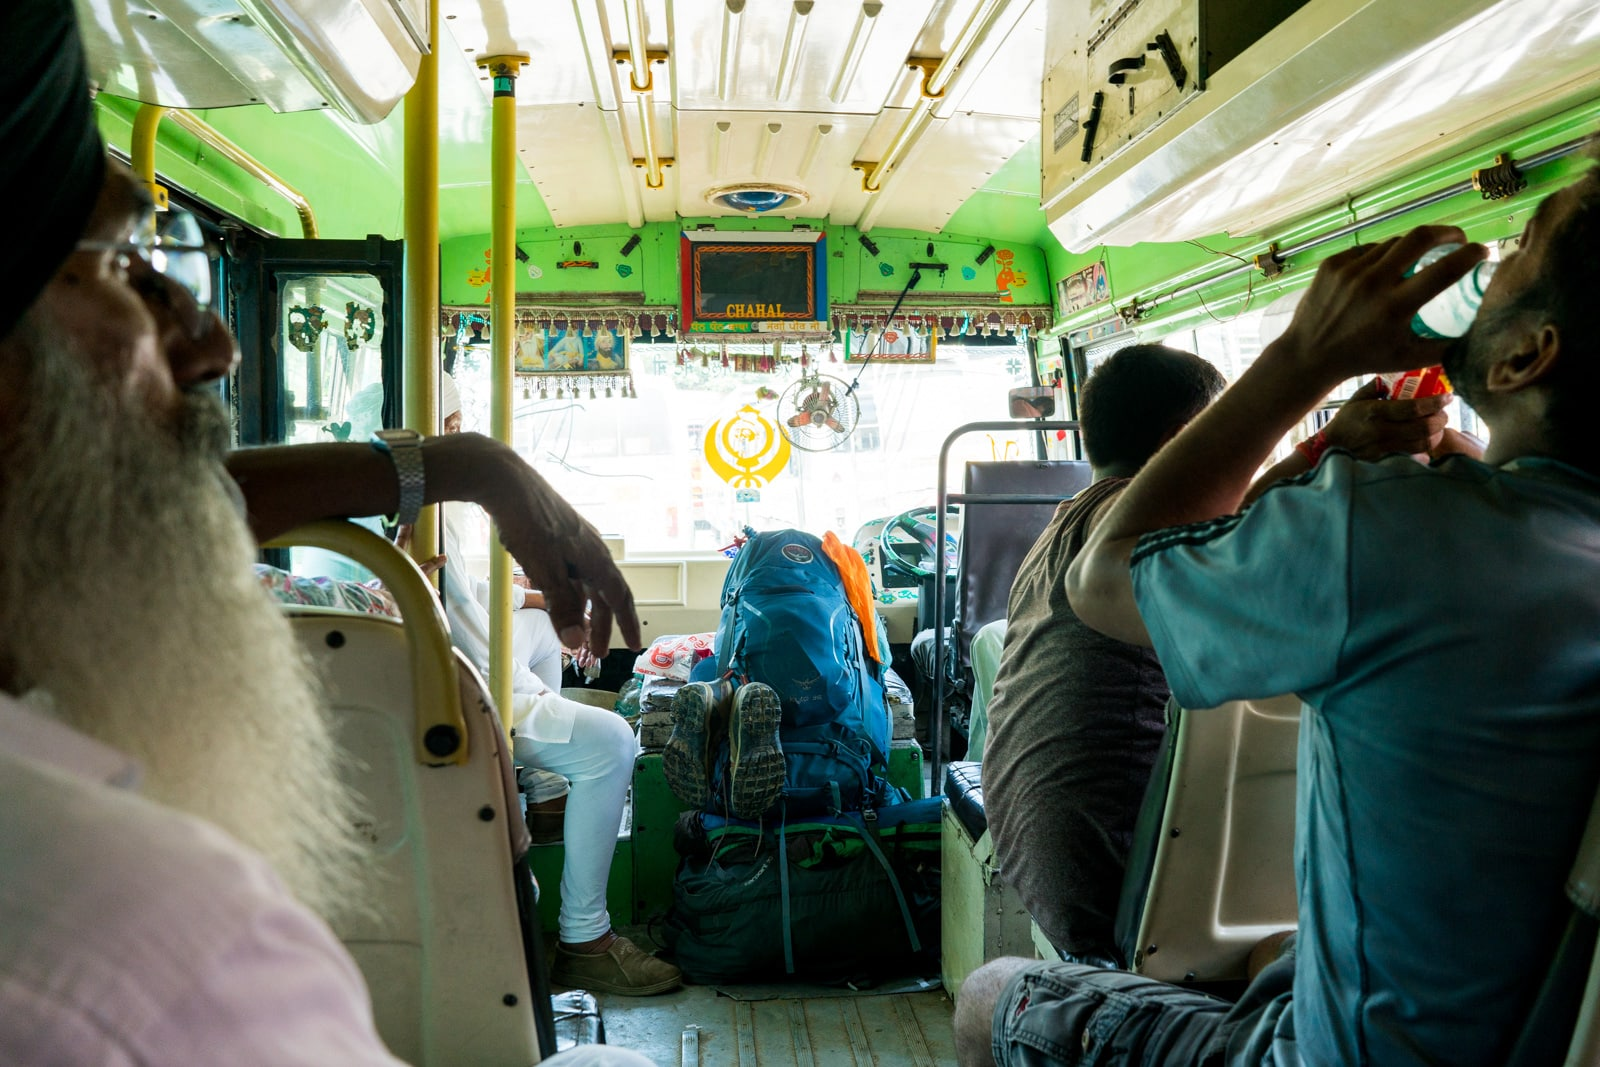 Crossing overland at the Wagah border between India and Pakistan - Public bus to Atari - Lost With Purpose travel blog